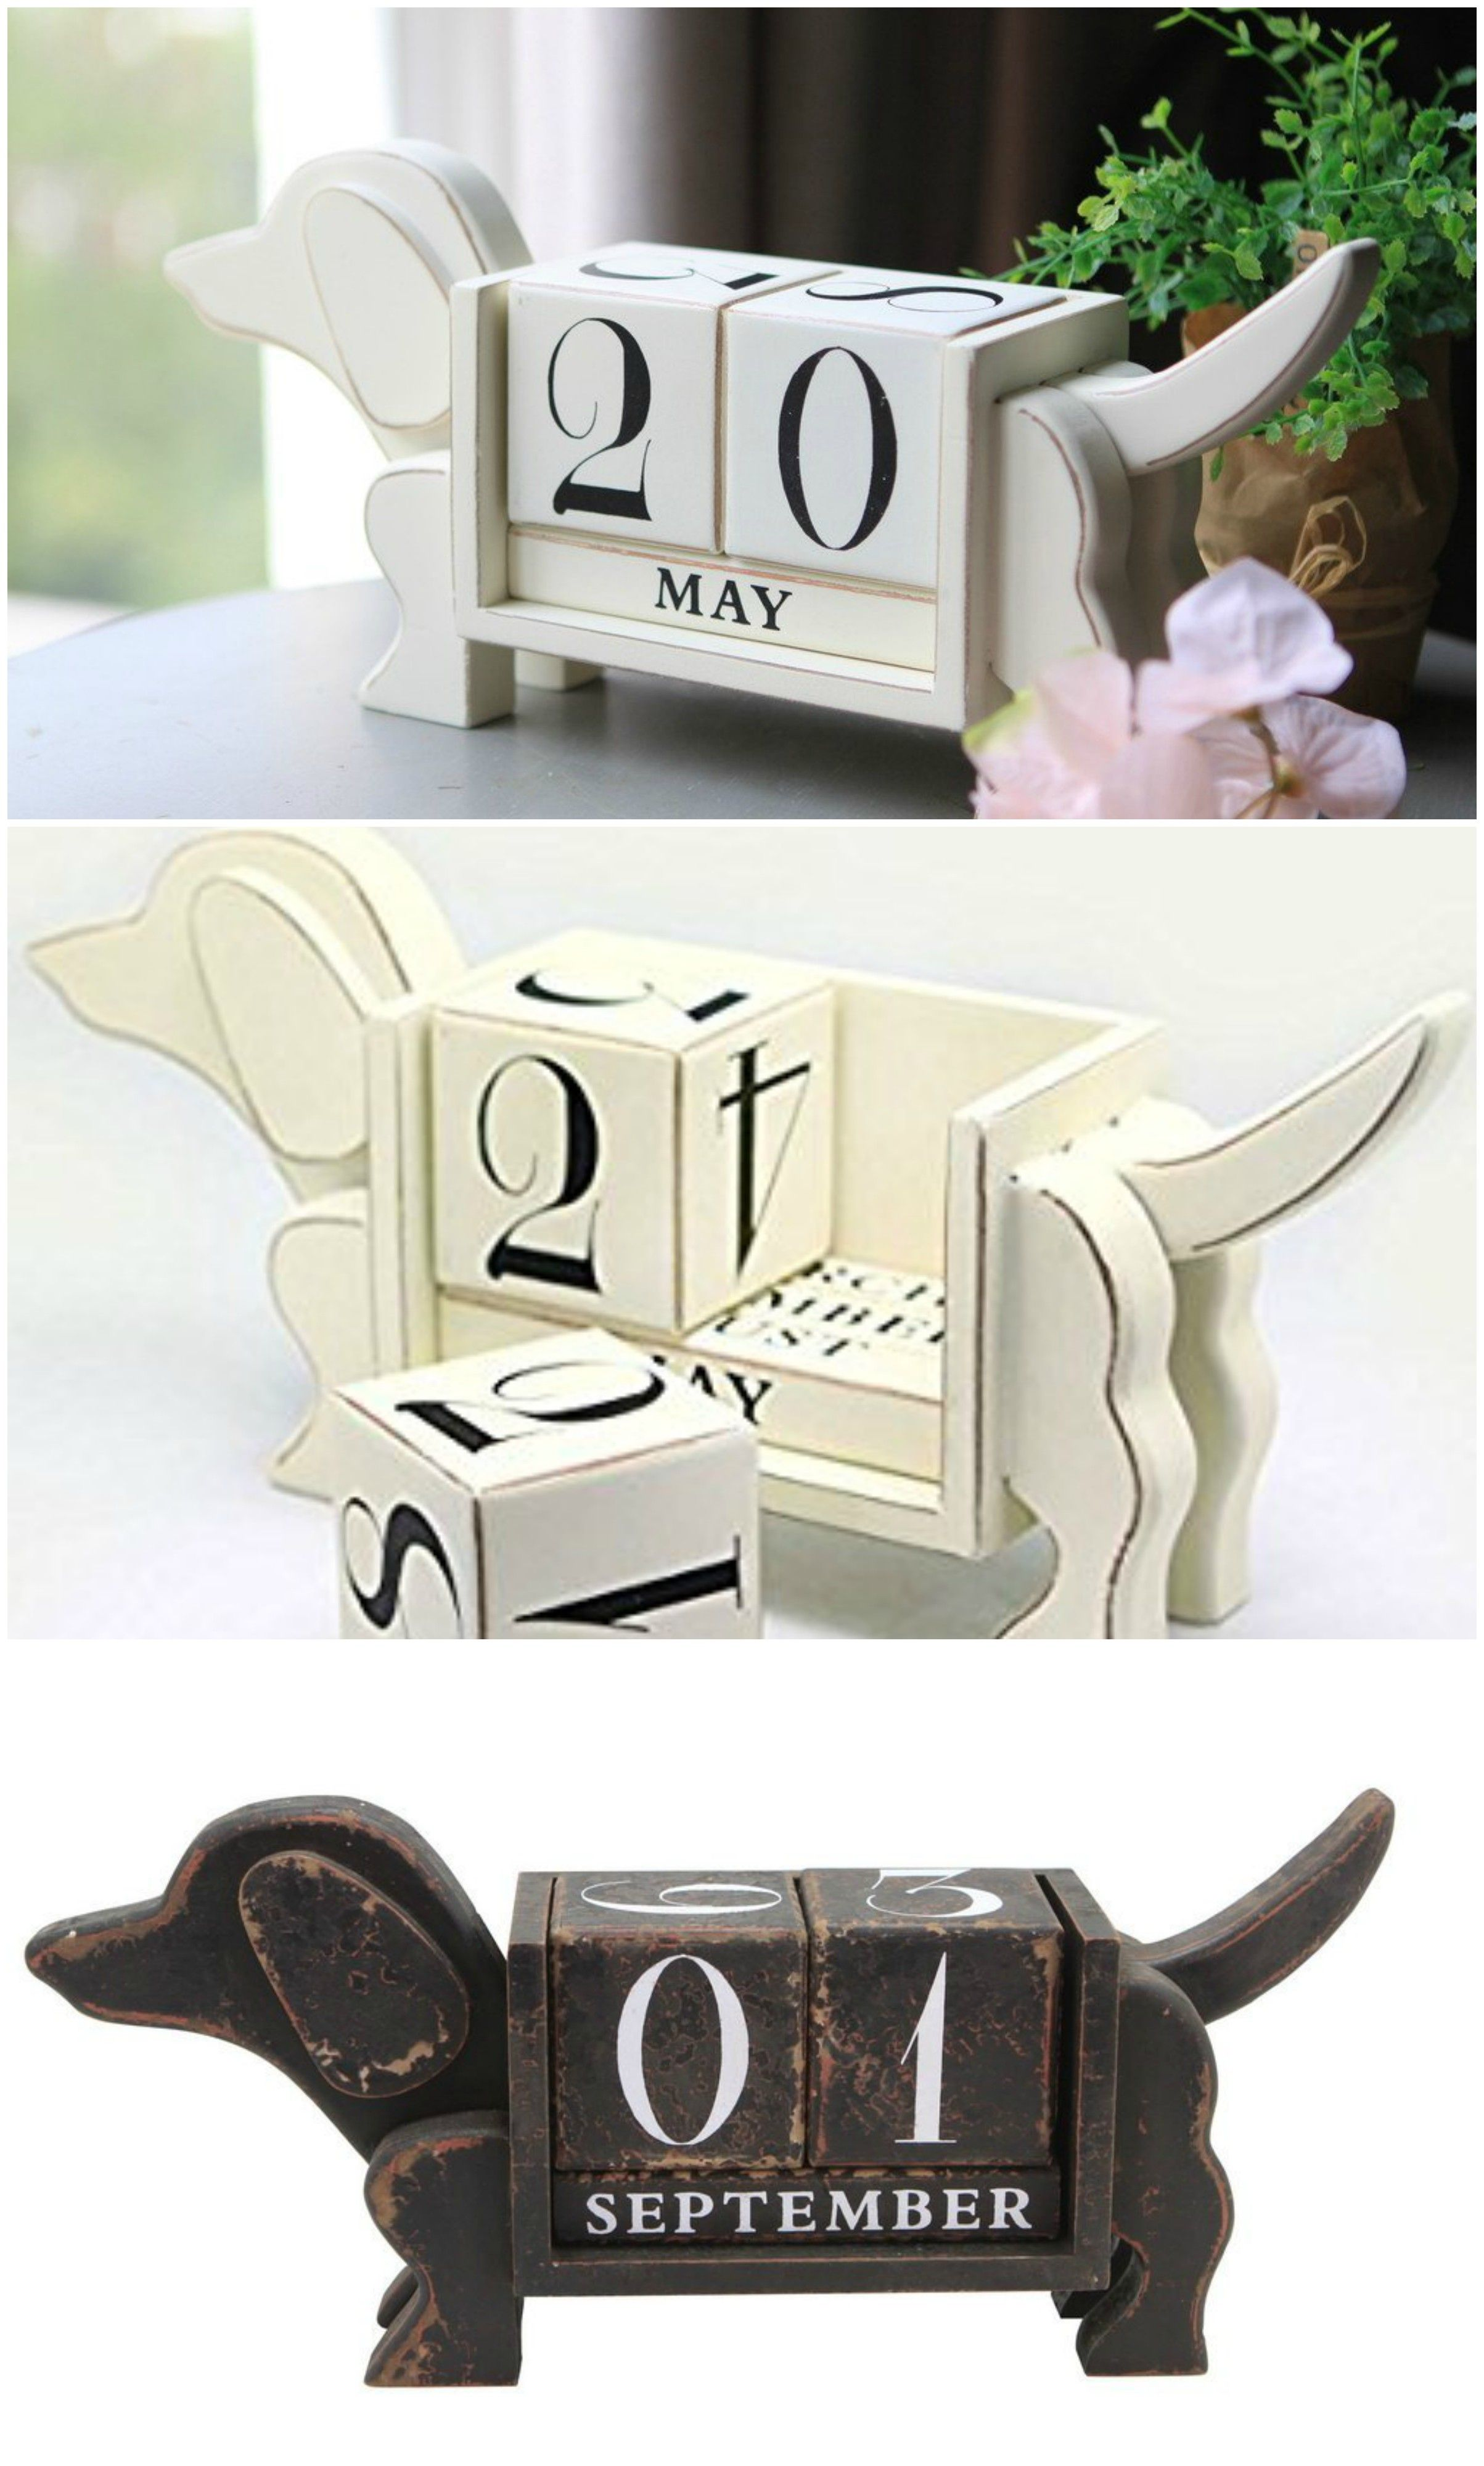 Dachshund Home Decor Dachshund Dog Shape Perpetual Desk Calendar Wood Blocks Home